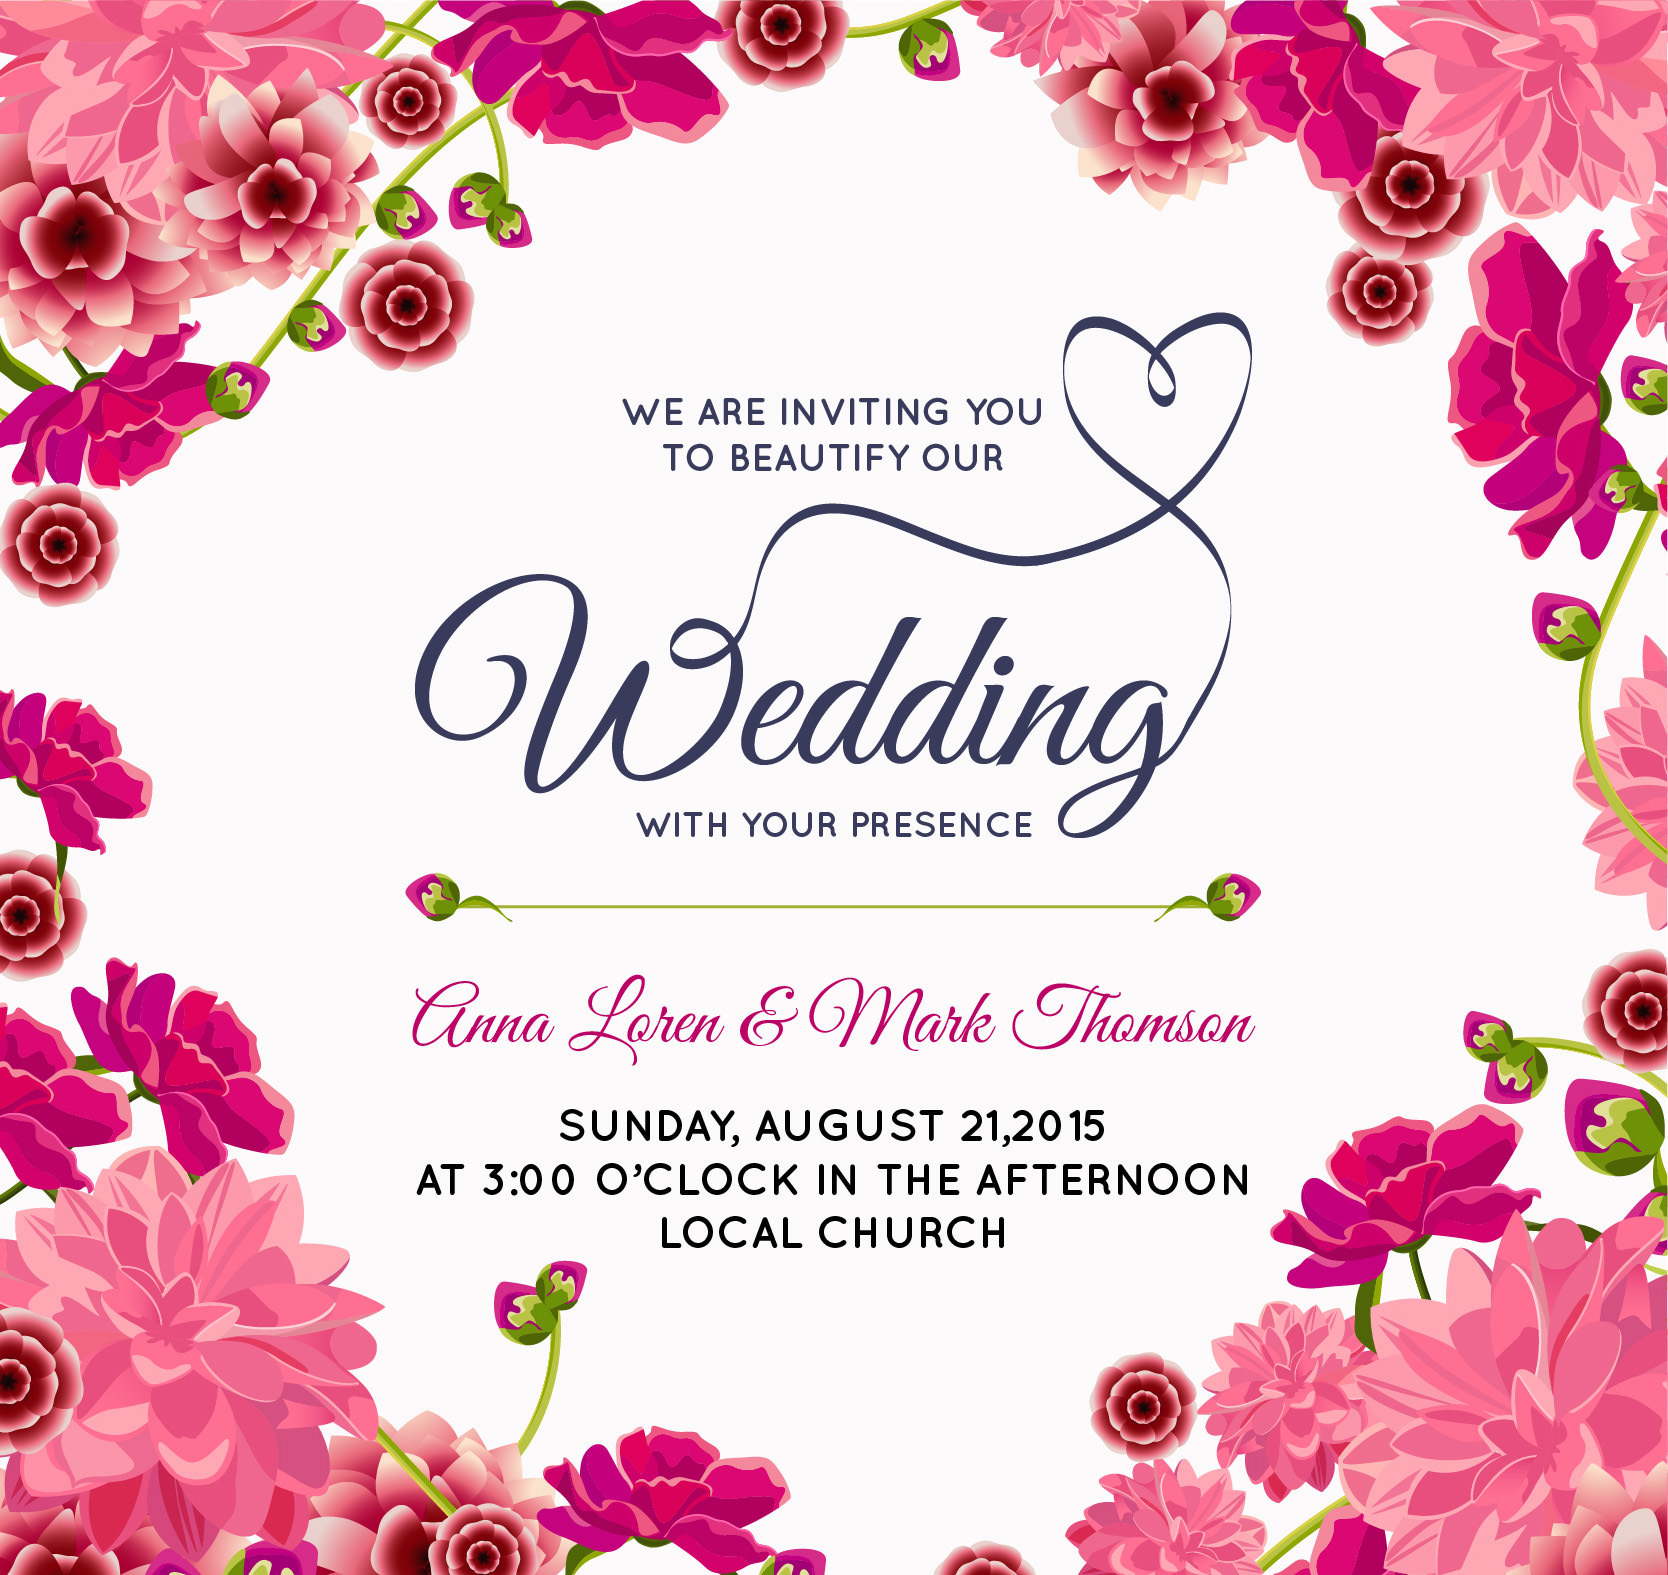 Wedding Invitation Card Designs Beautiful Pink Floral Wedding